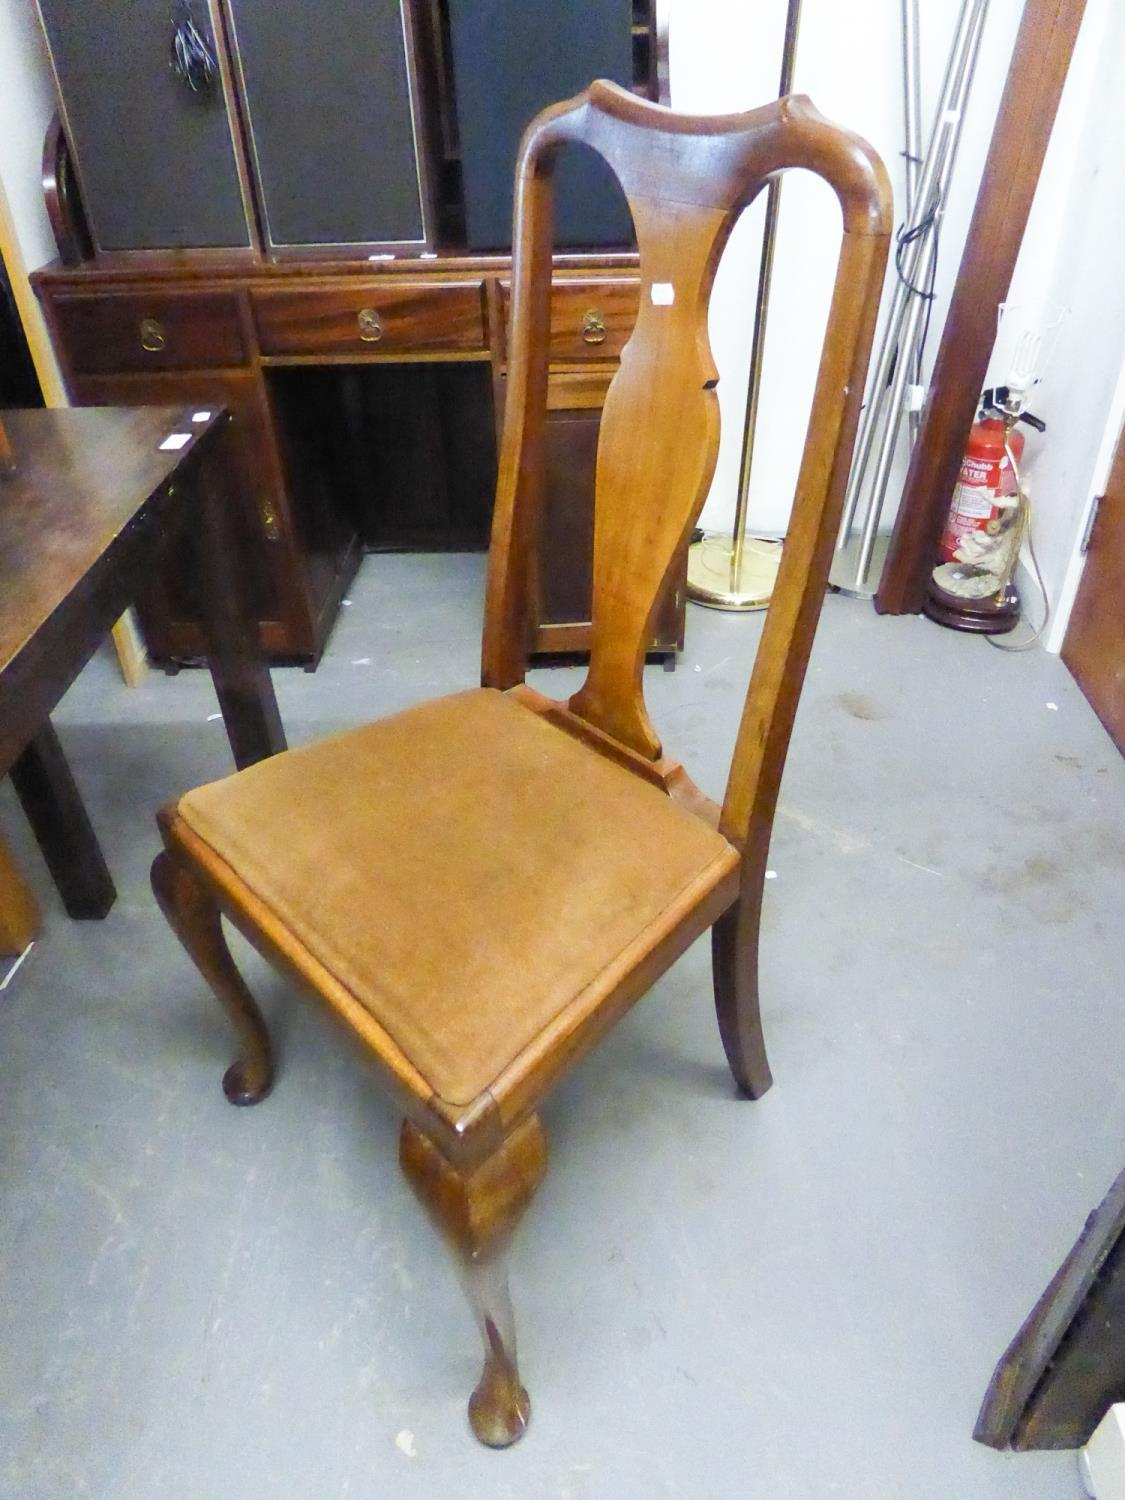 Lot 76 - AN EDWARDIAN MAHOGANY DINING CHAIR, HAVING A VASE SHAPED BACK, SPLAT OVER PAD DROP-IN SEAT ON